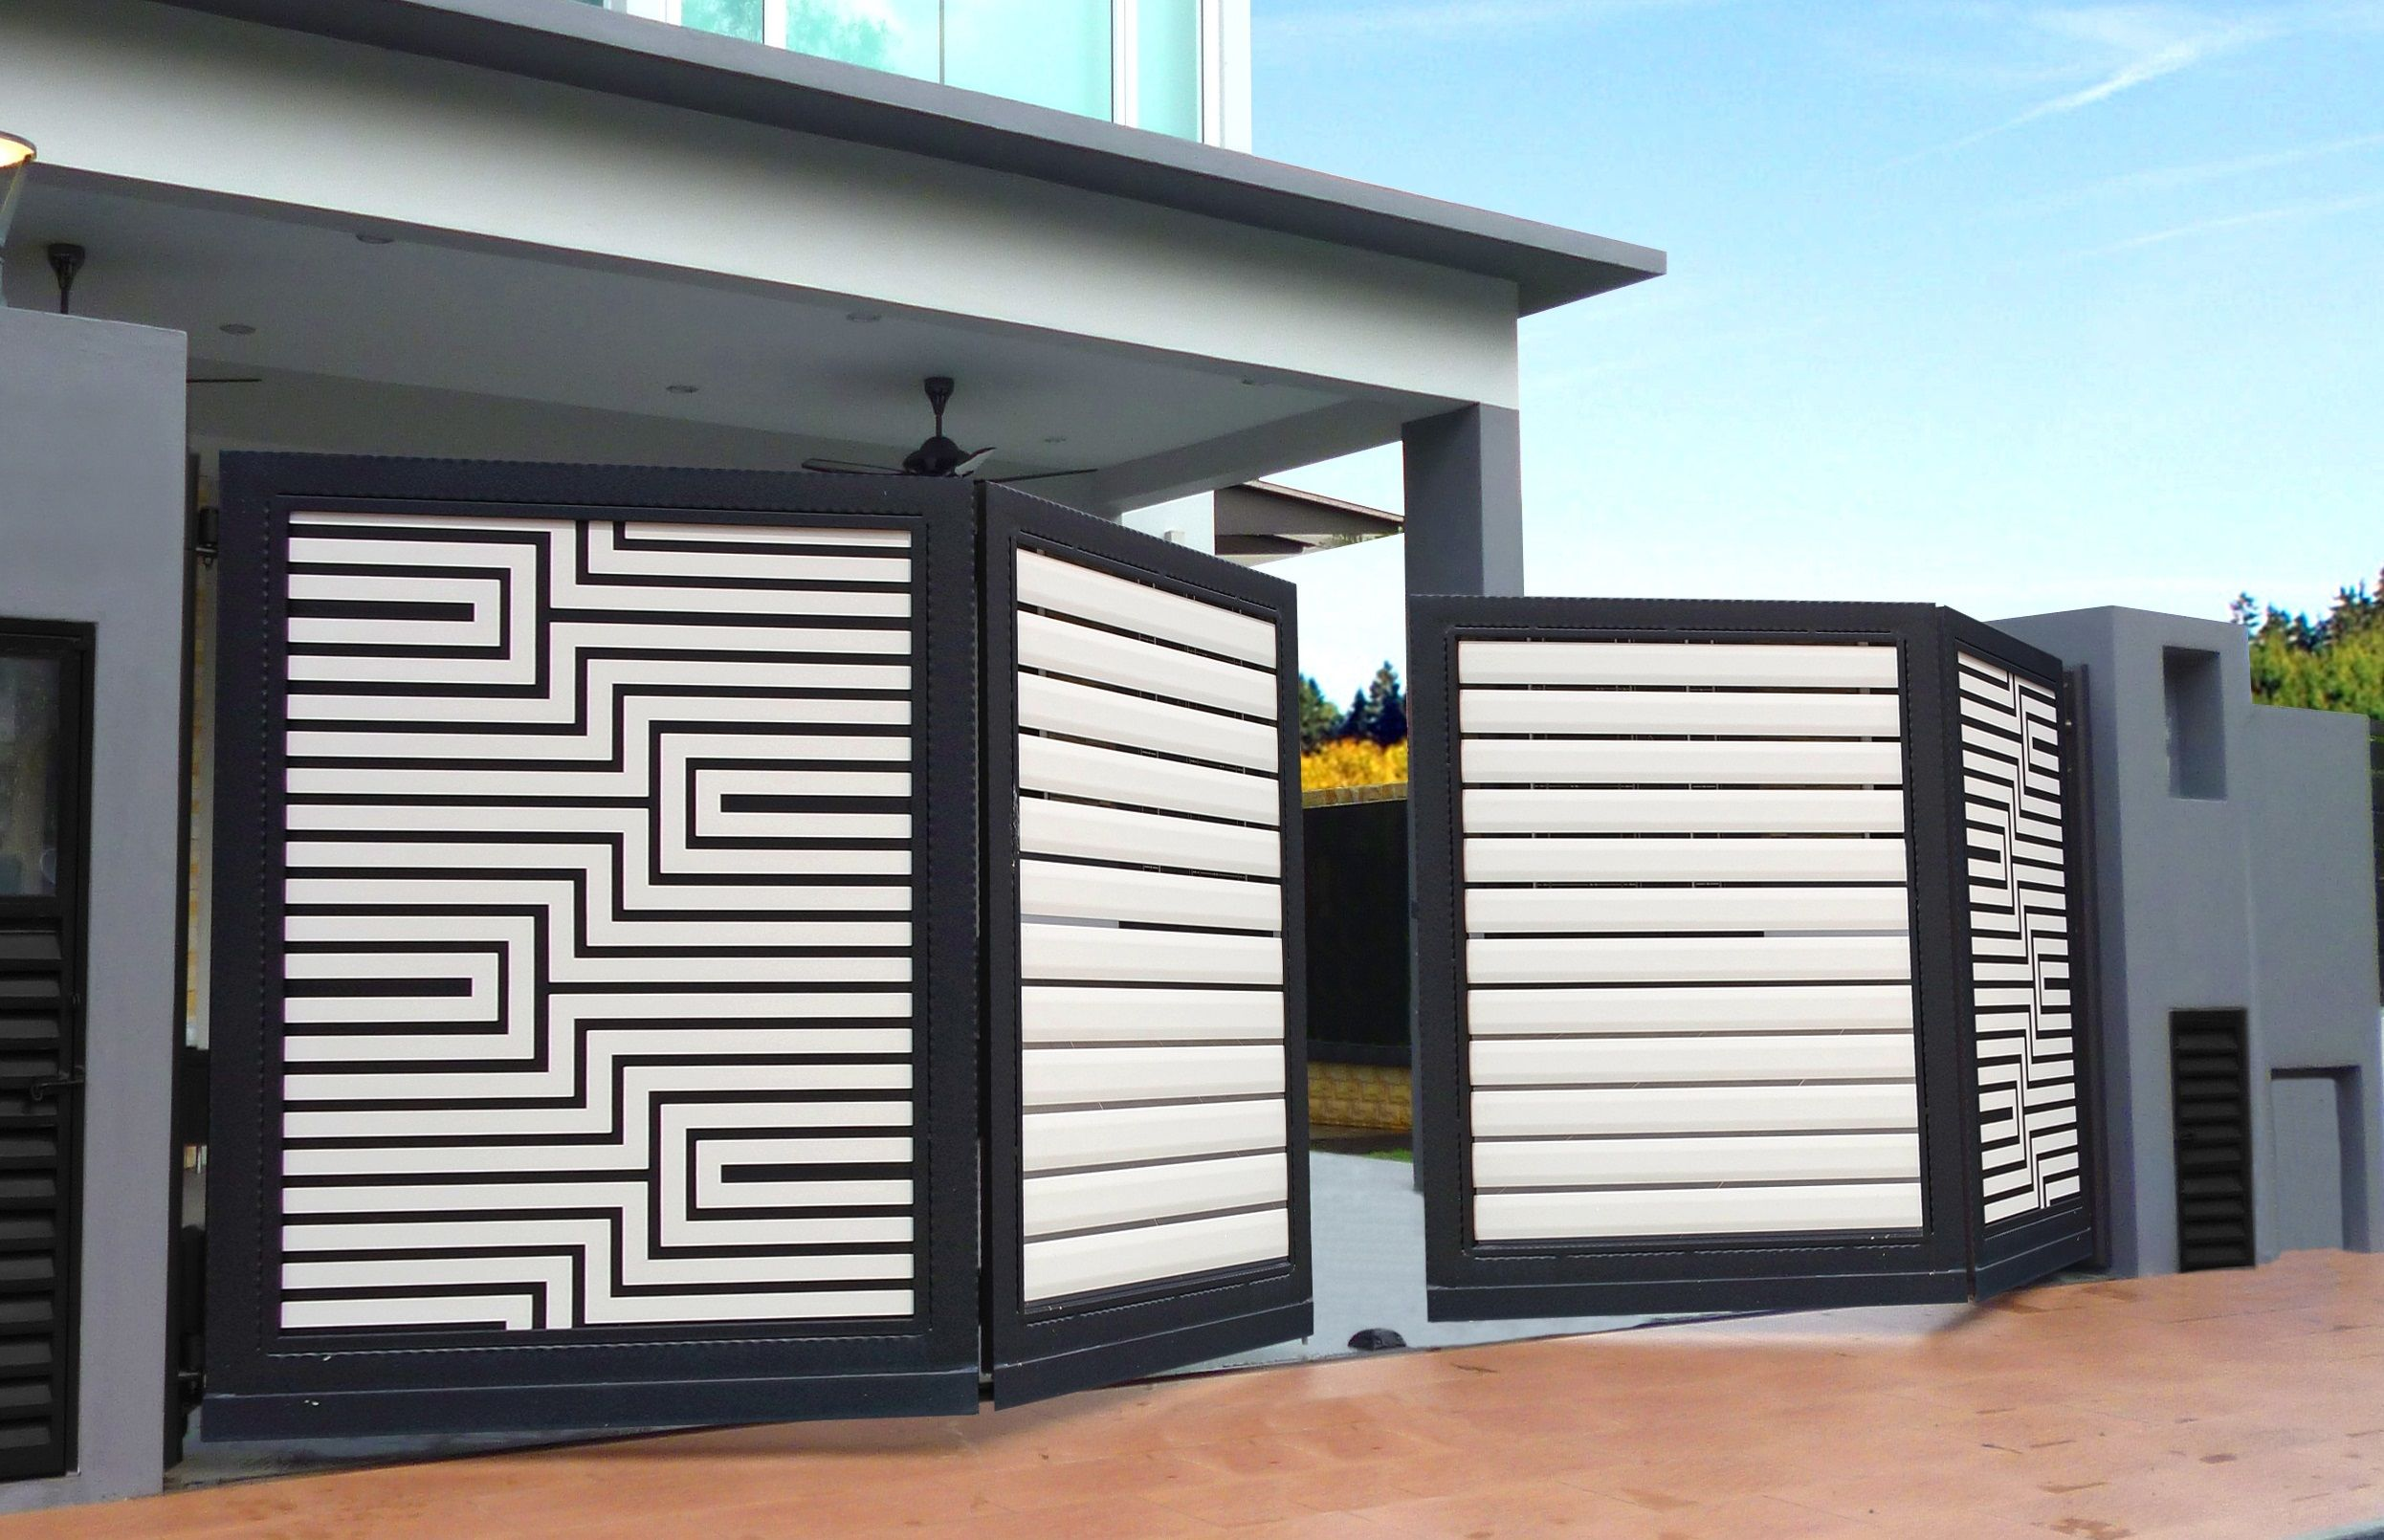 Contemporary Compound Wall Gate Designs